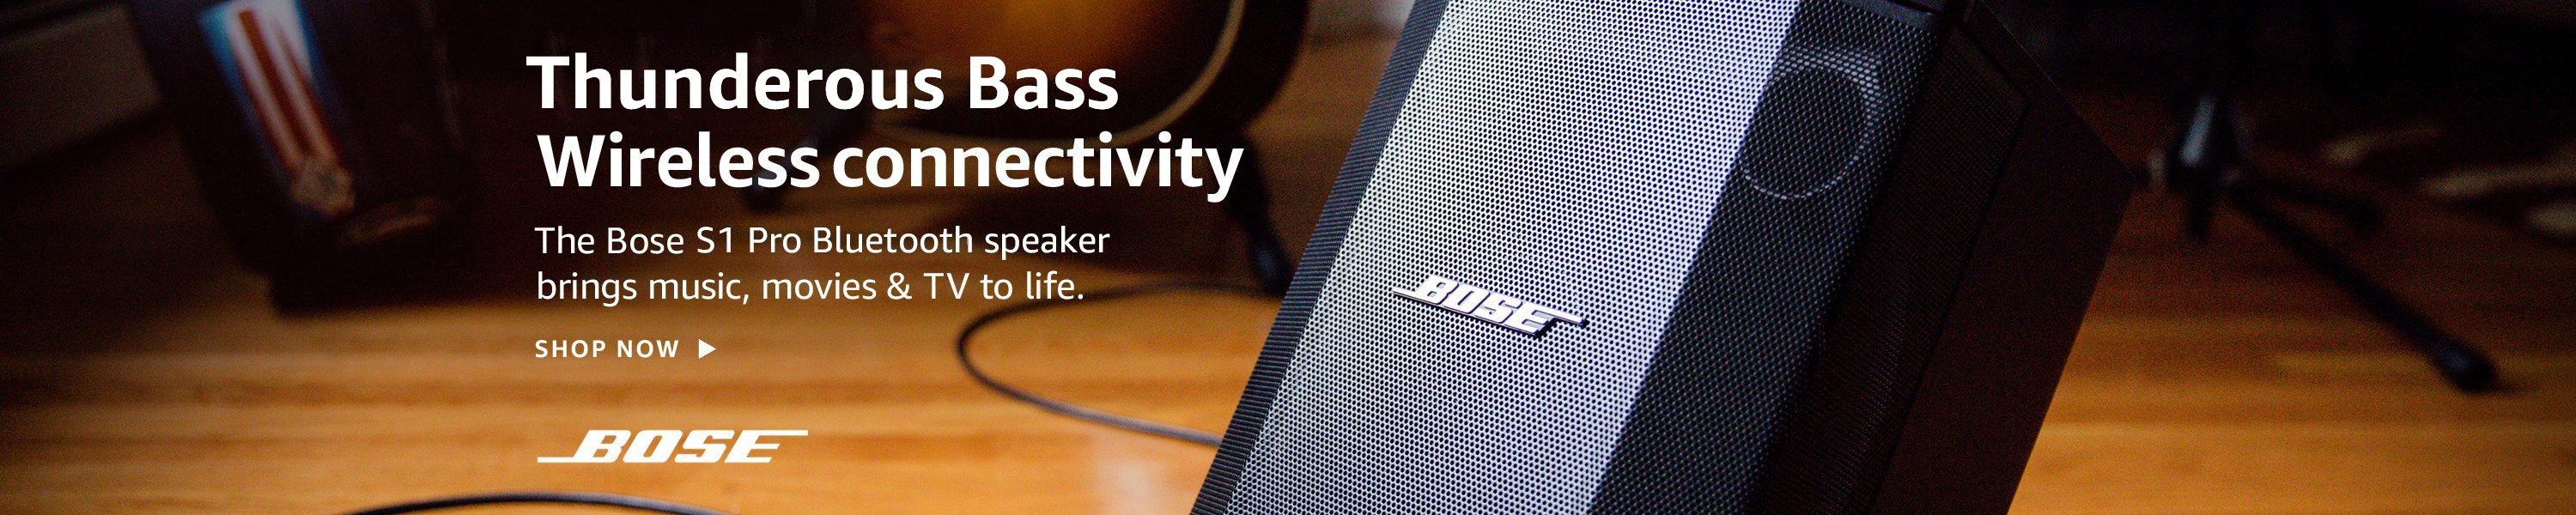 Thunderess bass. Wireless connectivity. The Bose S1 Pro Bluetooth speaker brings movies, music to life.